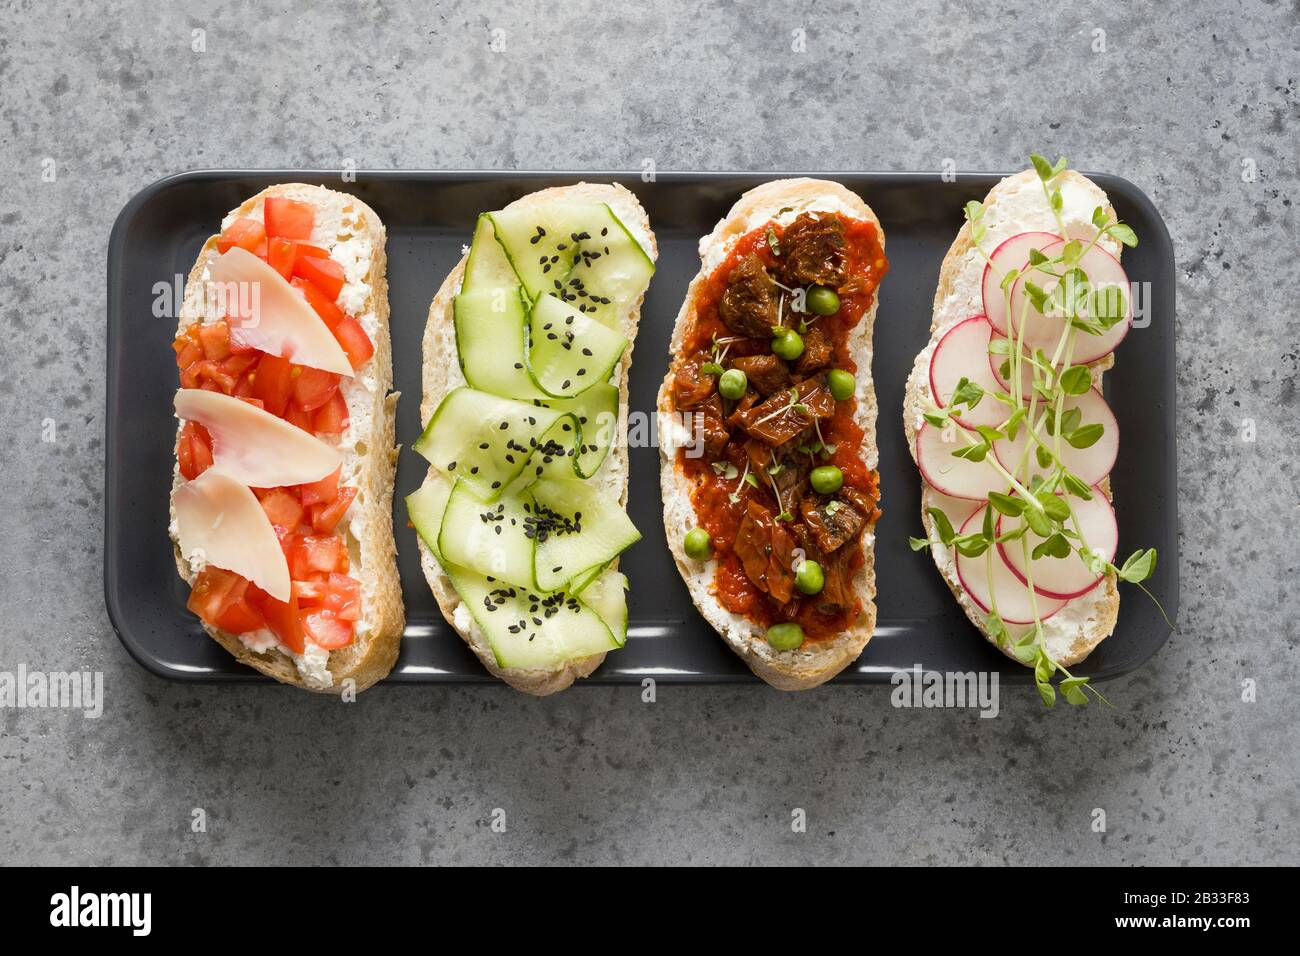 Sandwiches on ciabatta toast with fresh vegetables, radishes, tomatoes, cucumbers and microgreens on gray background. View from above. Stock Photo